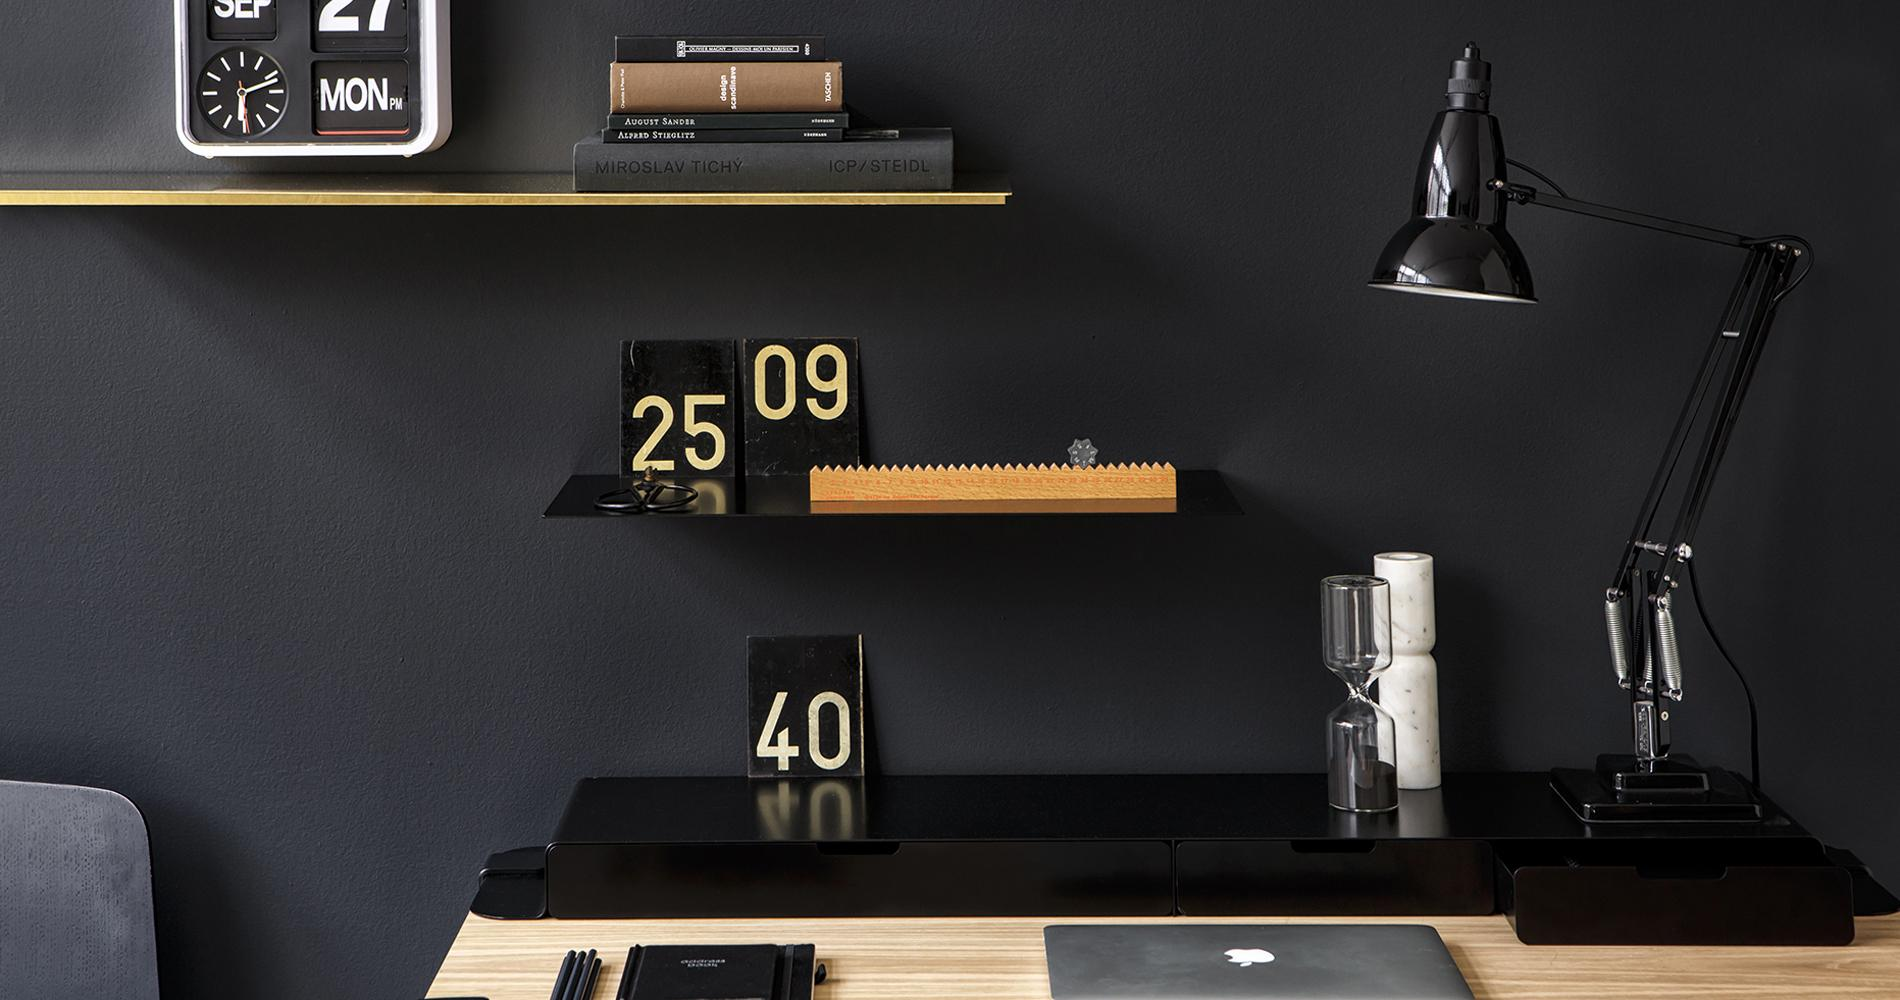 ces accessoires qui nous simplifient la vie de bureau. Black Bedroom Furniture Sets. Home Design Ideas